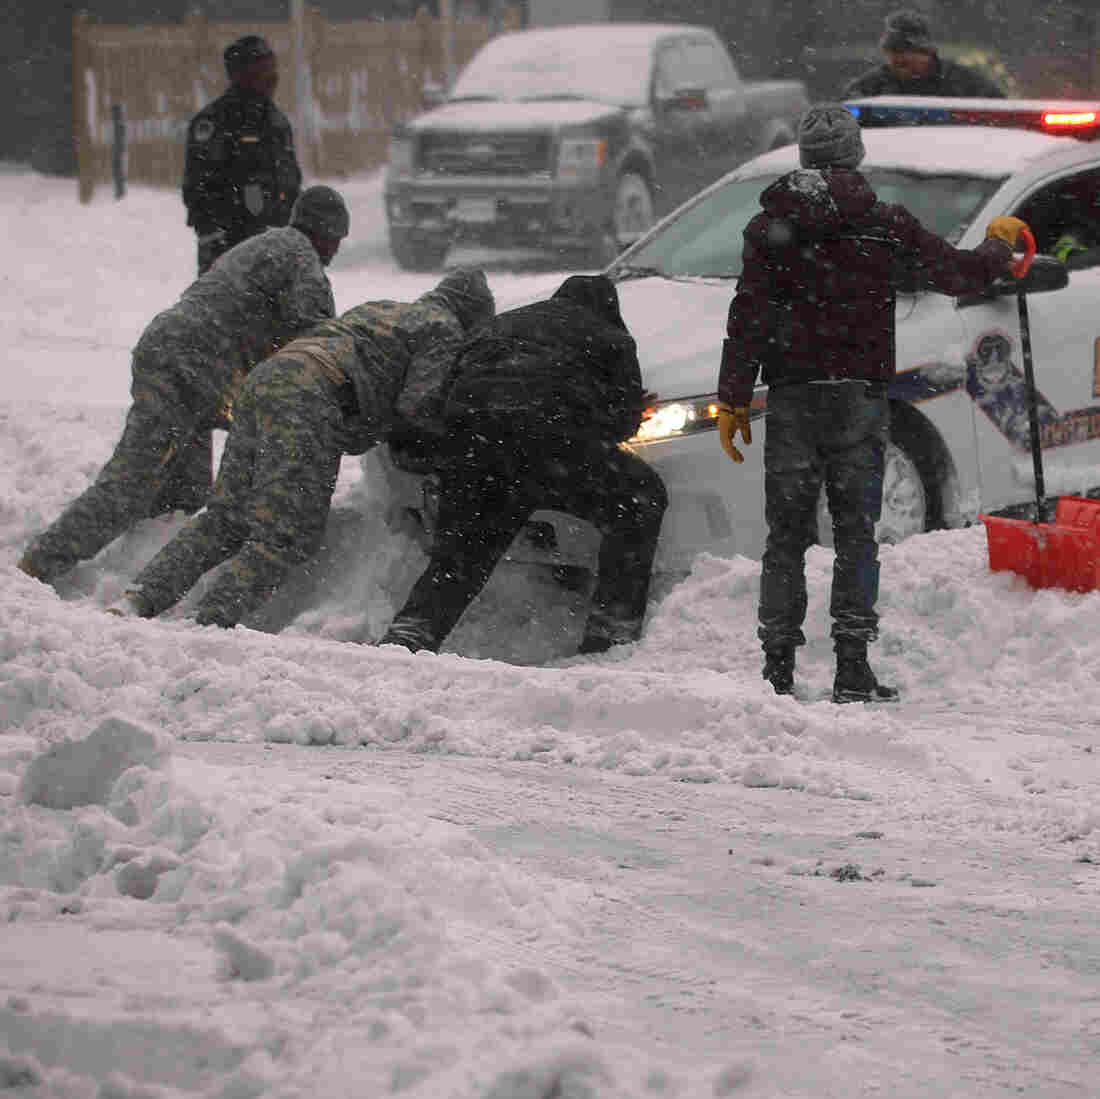 Much Of East Coast Paralyzed As Massive Winter Storm Continues